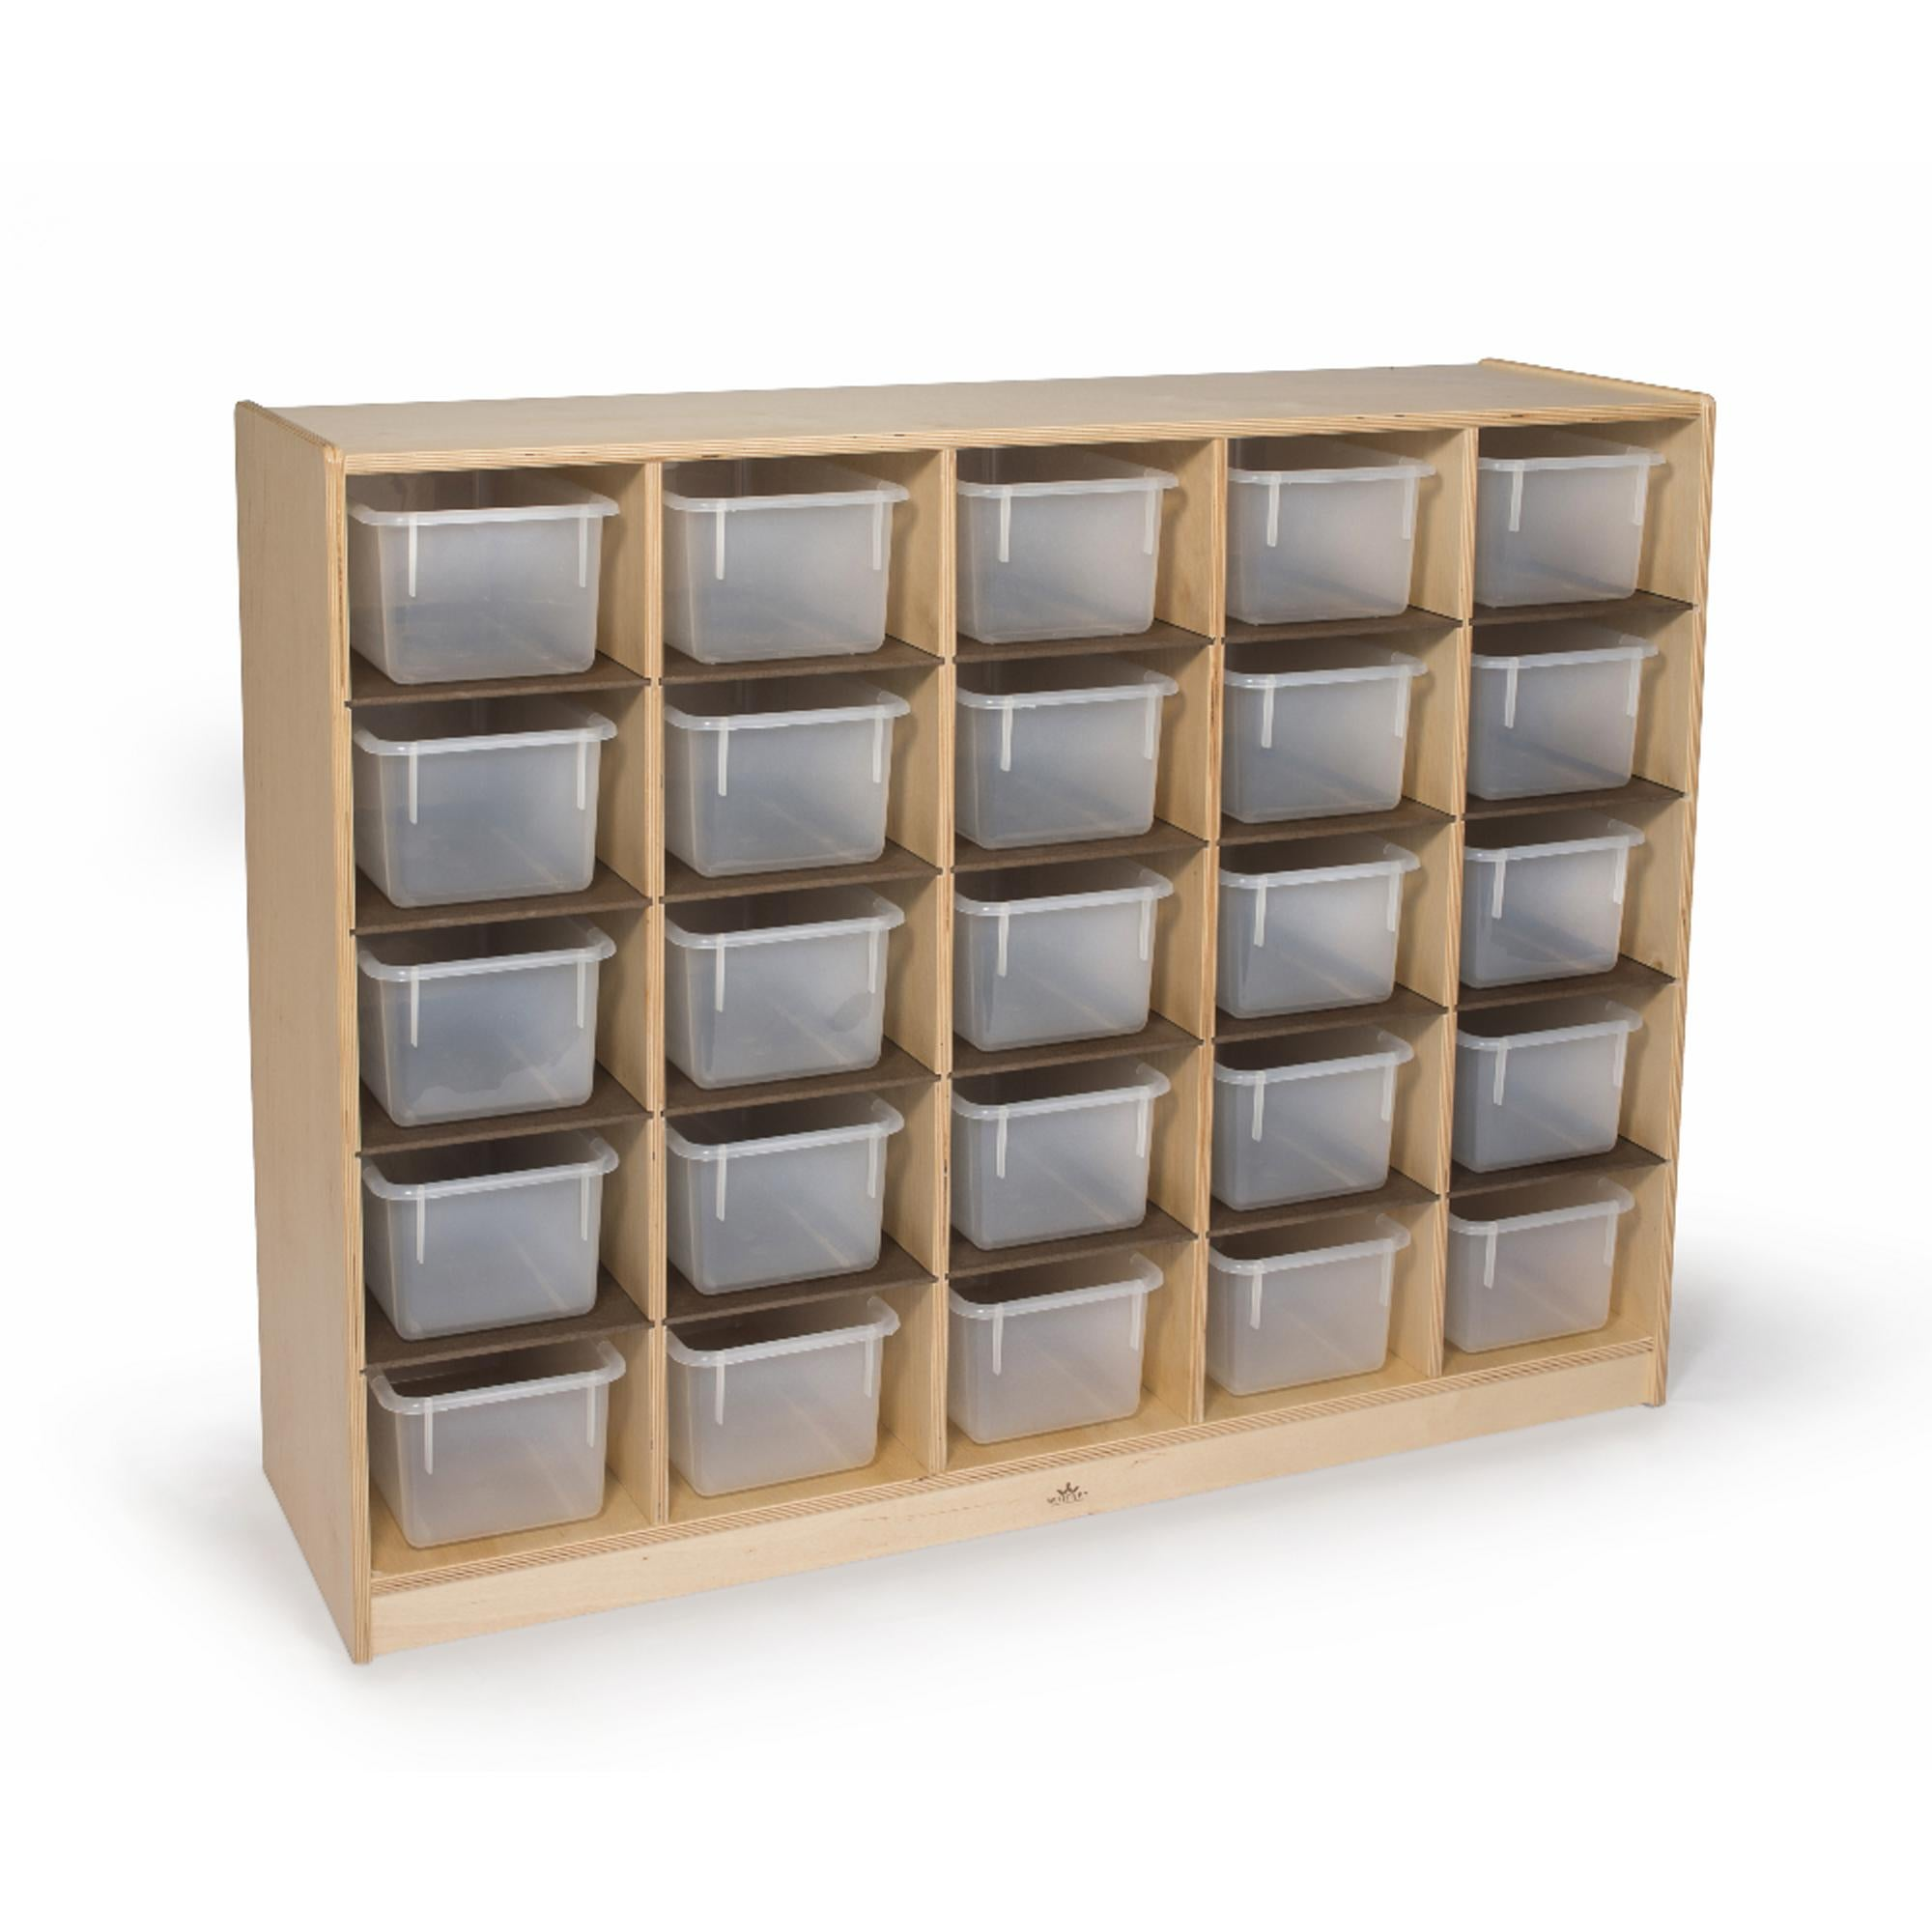 Cubby Storage Cabinet With 25 Trays